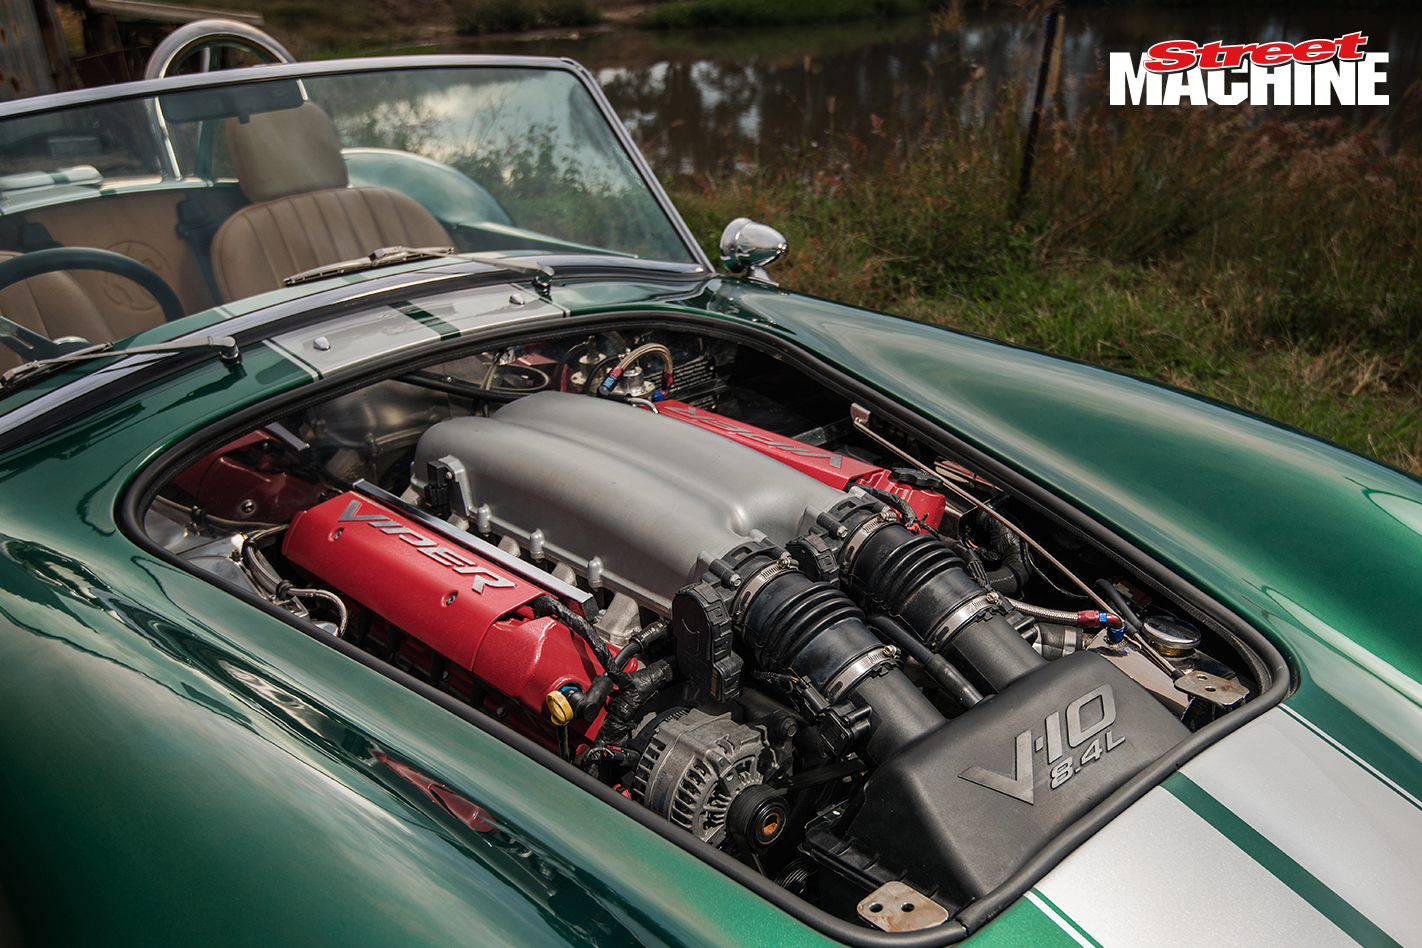 V10 Cobra engine